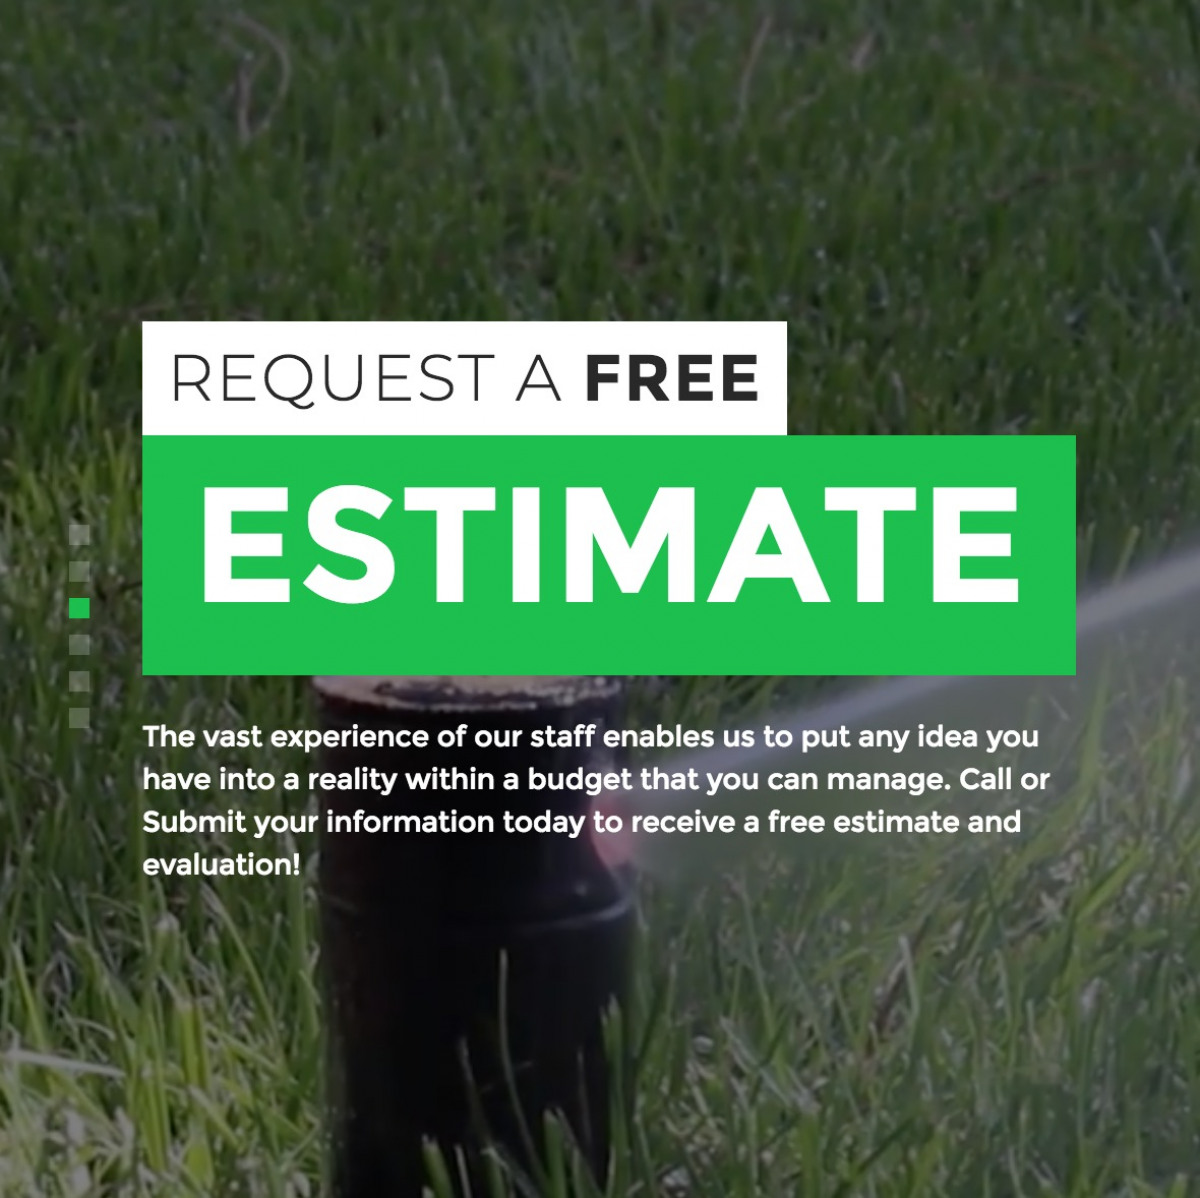 Image of website for Atlanta Sod